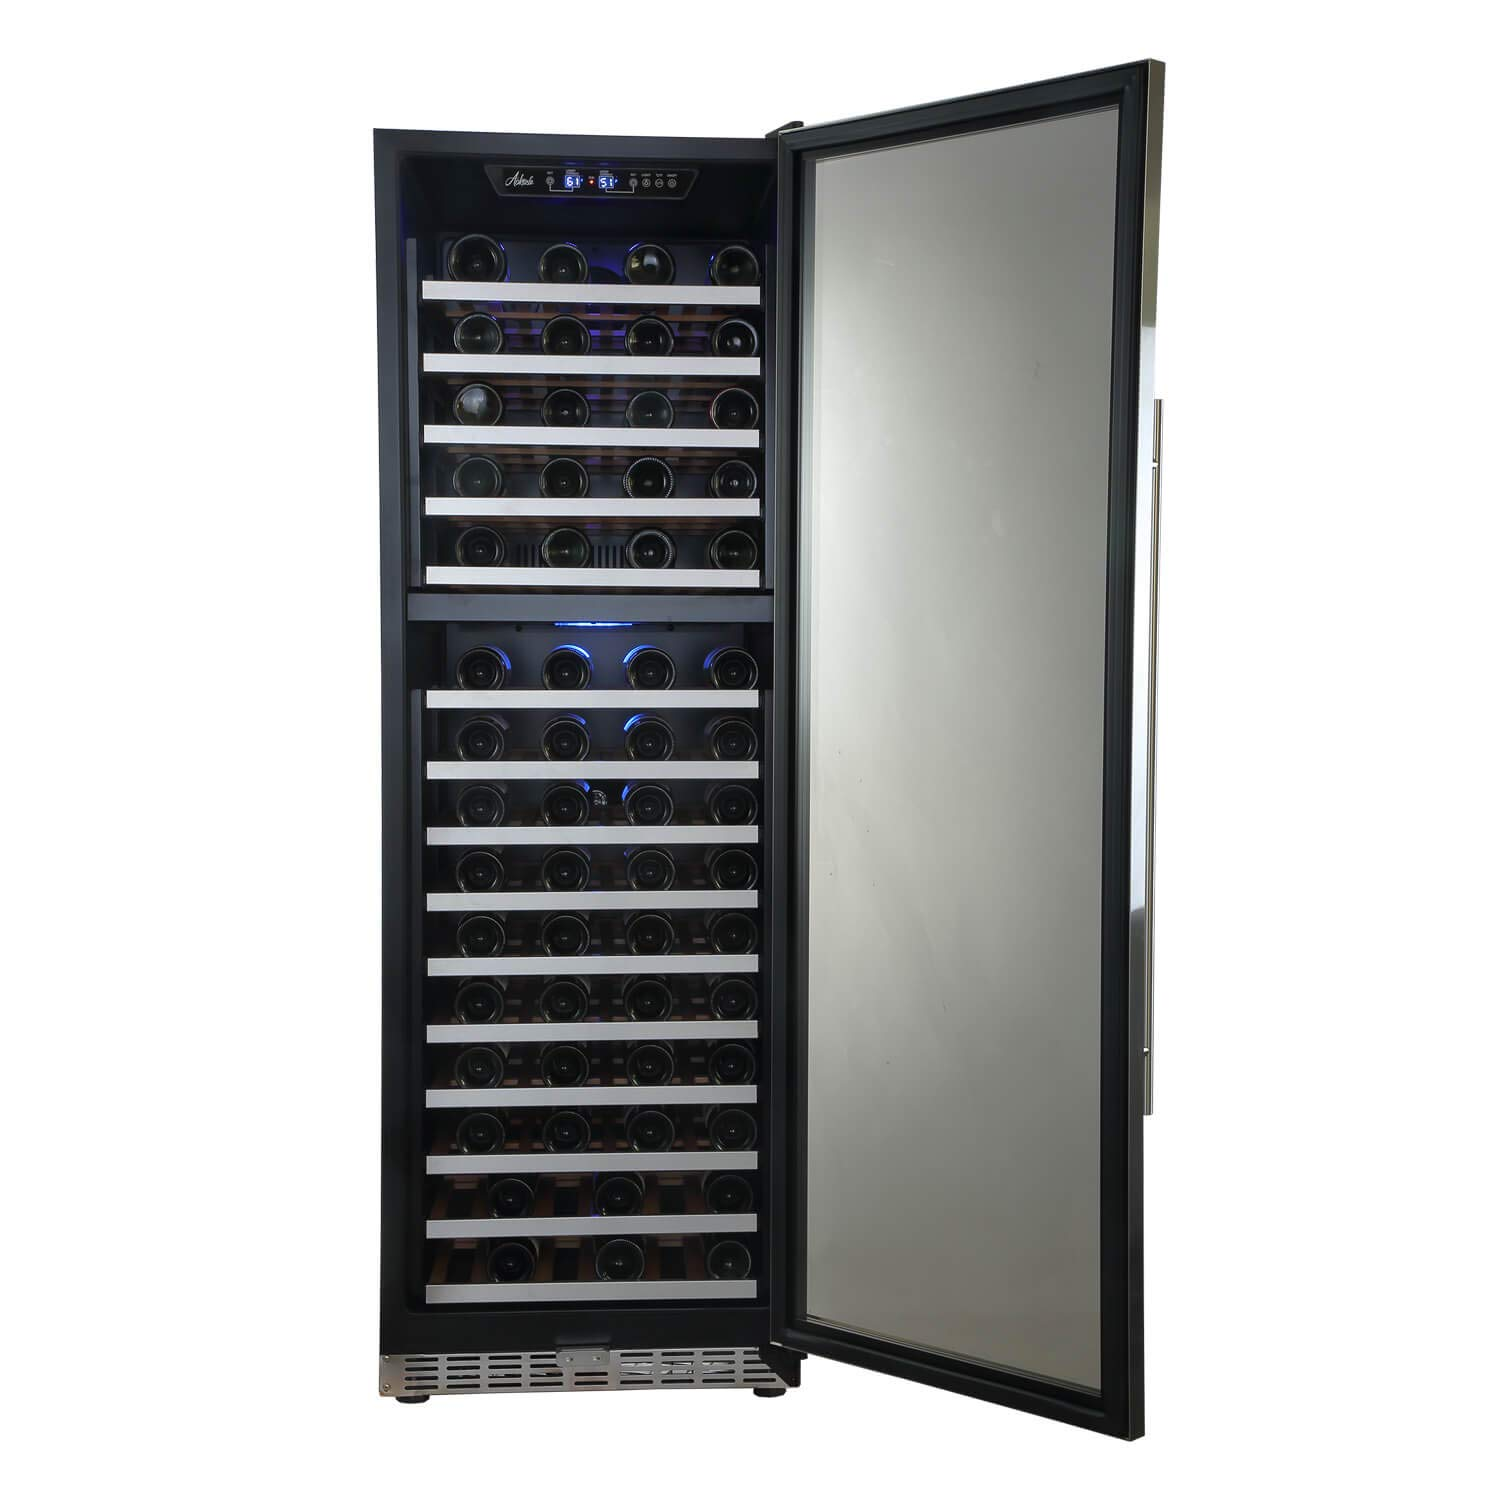 "Aokinle 24"" Wine Cooler-155 Bottle Dual Zone,Built-in&Freestanding Compressor Wine Refrigerator,Stainless steel&Double-Layer Tempered Glass Door,Temperature Memory Function,Blue LED"